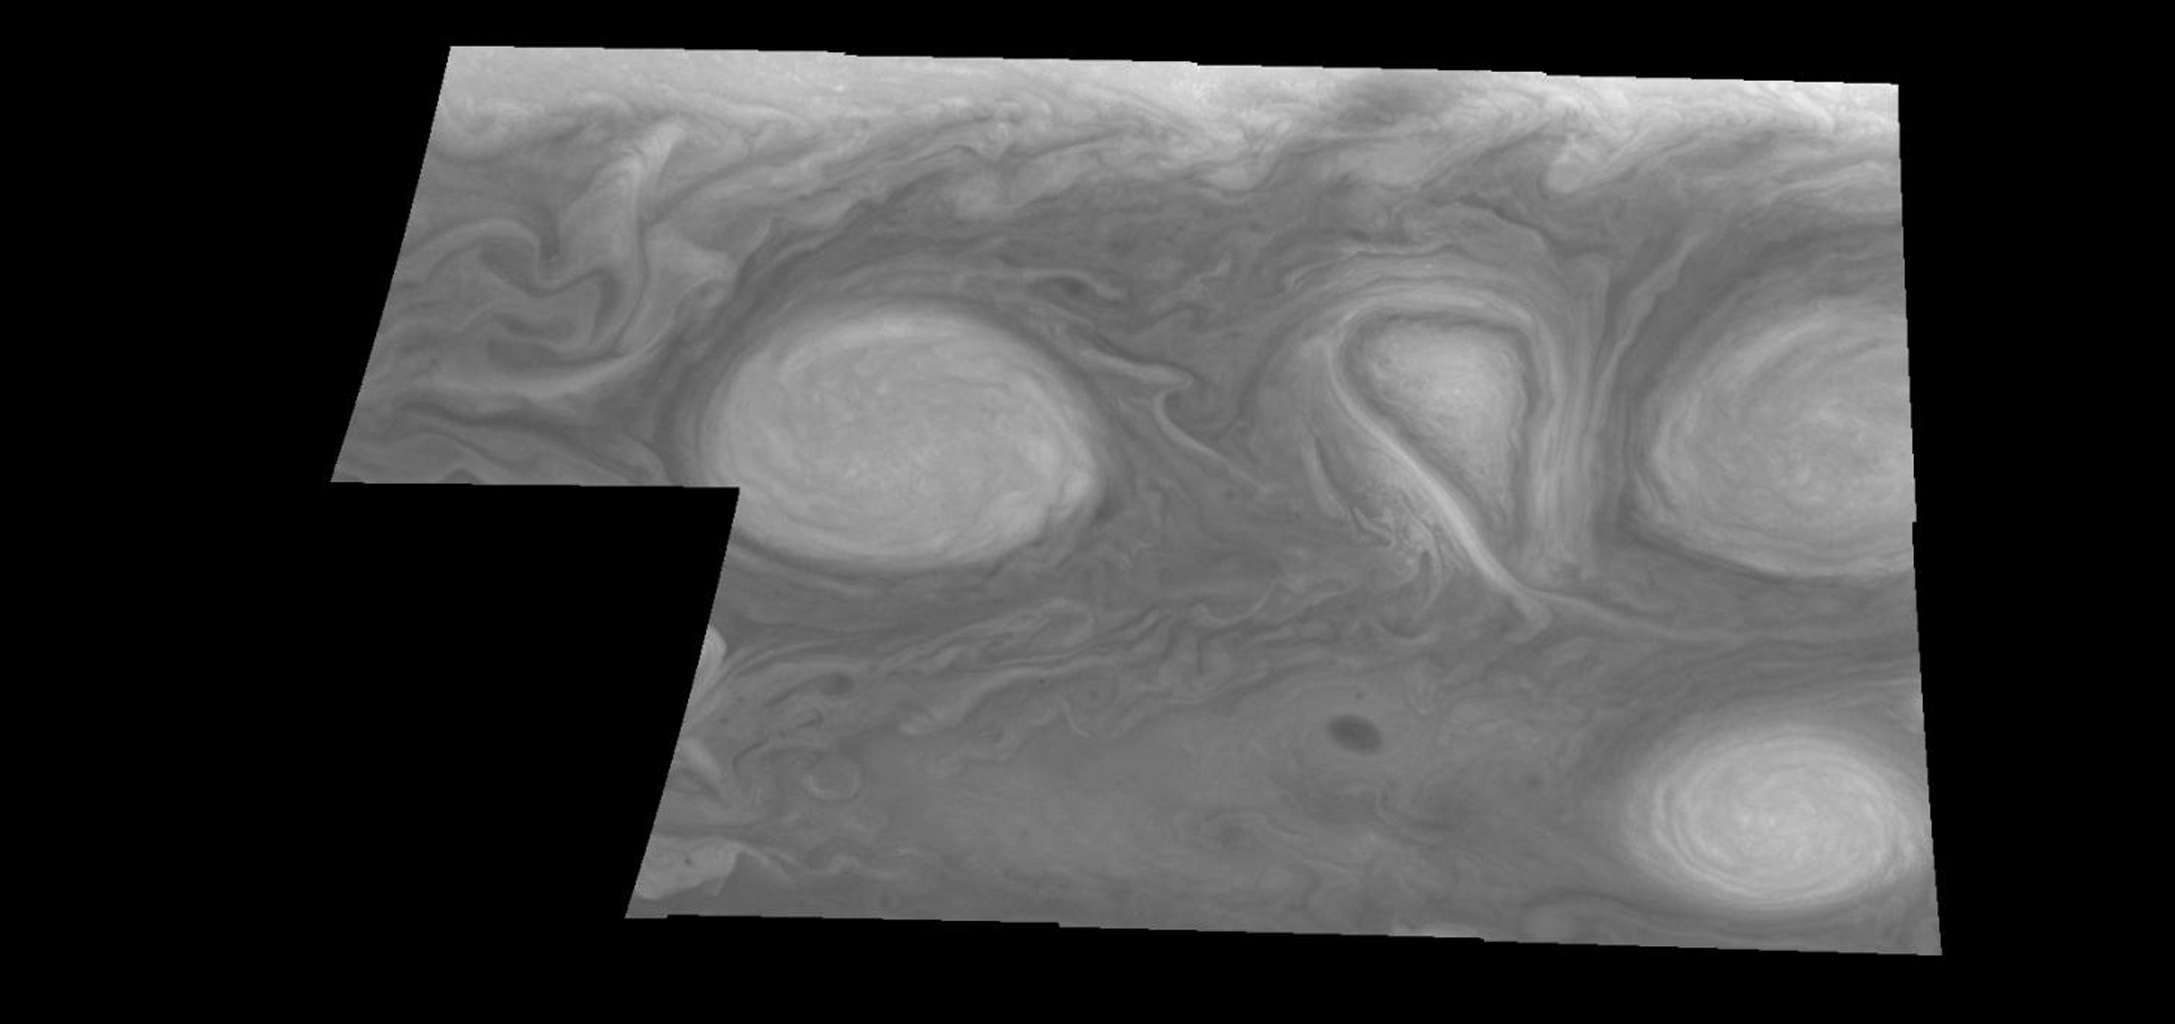 This mosaic shows the features of Jupiter's main visible cloud deck and upper-tropospheric haze, with higher features enhanced in brightness over lower features as seen by NASA's Galileo orbiter on February 19, 1997.